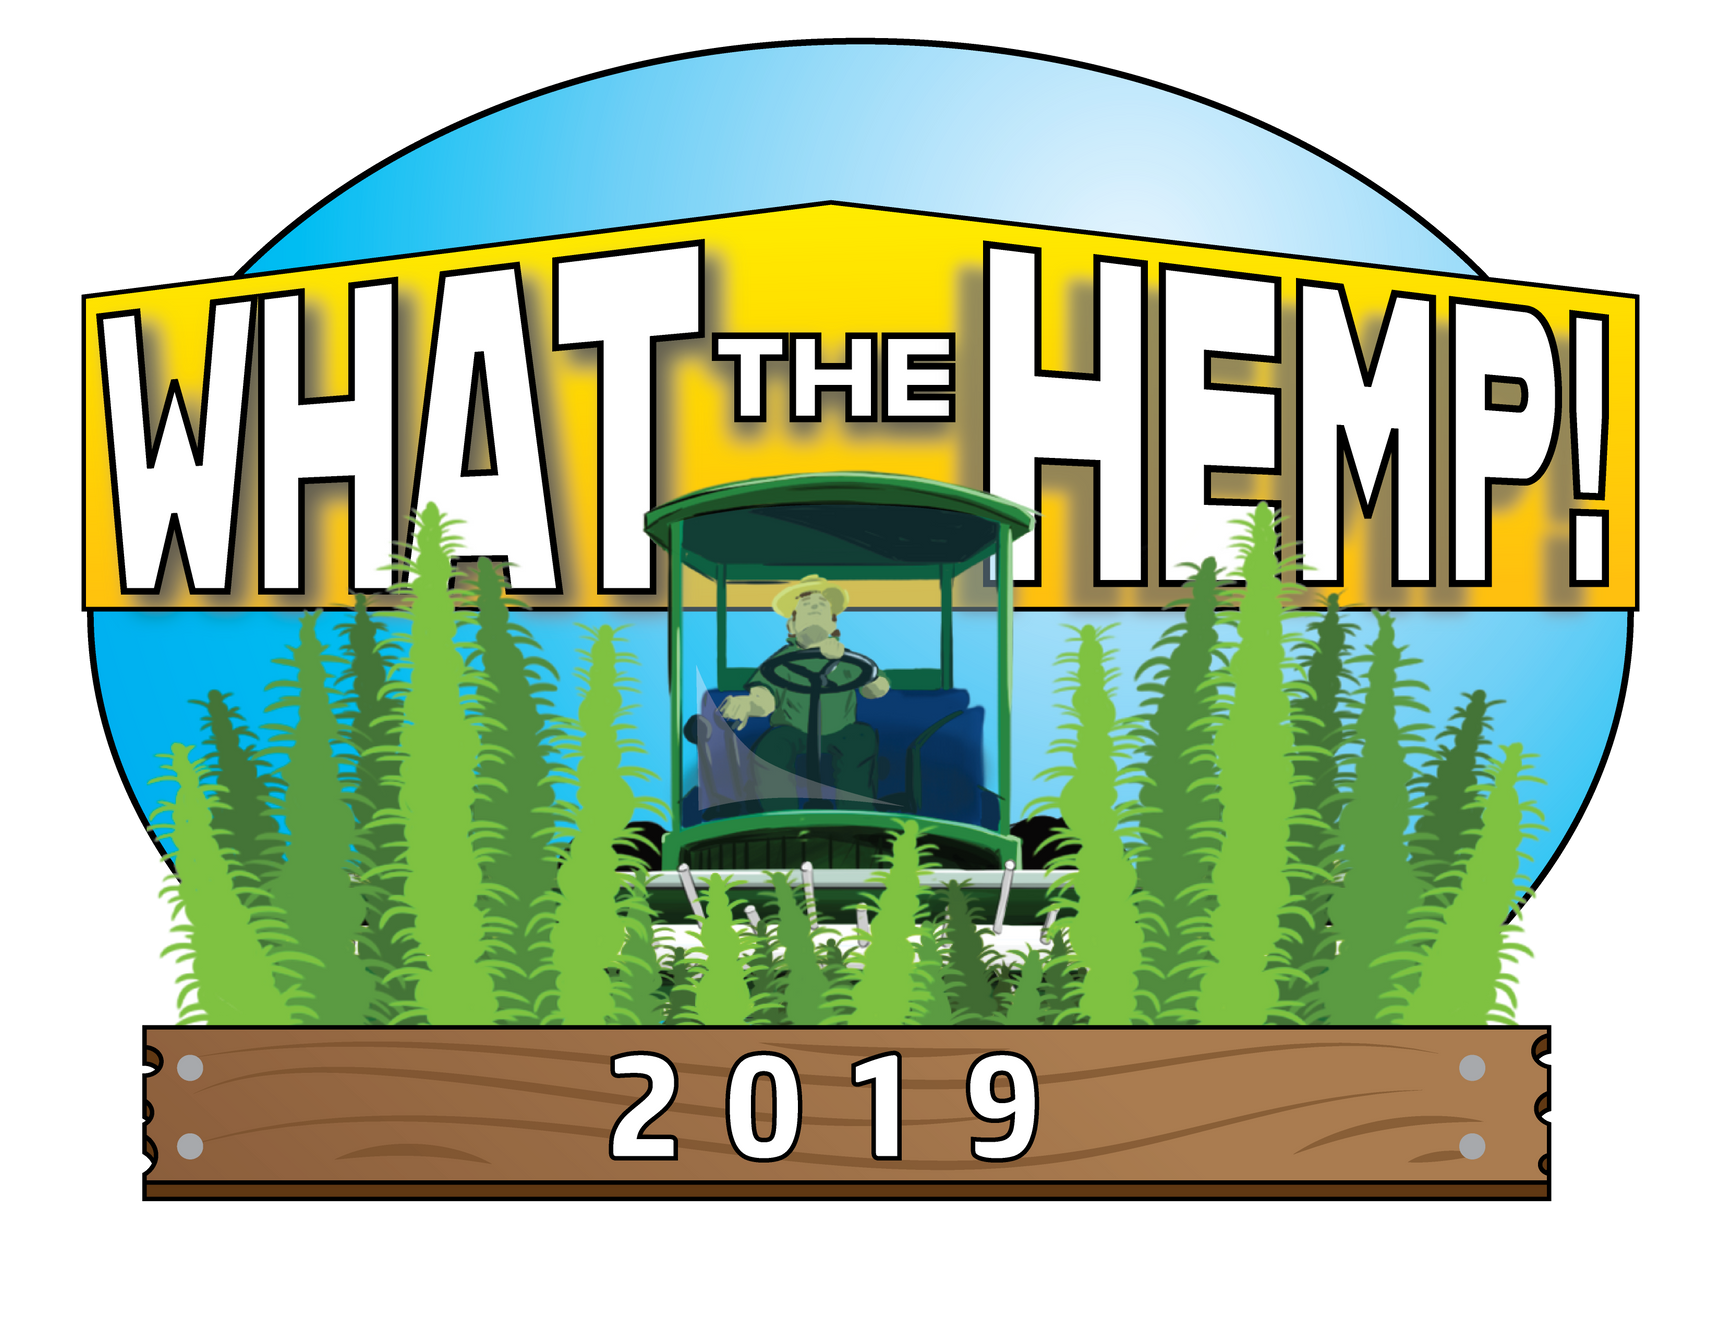 Seeds and Starts | Seminar | What the Hemp | United States